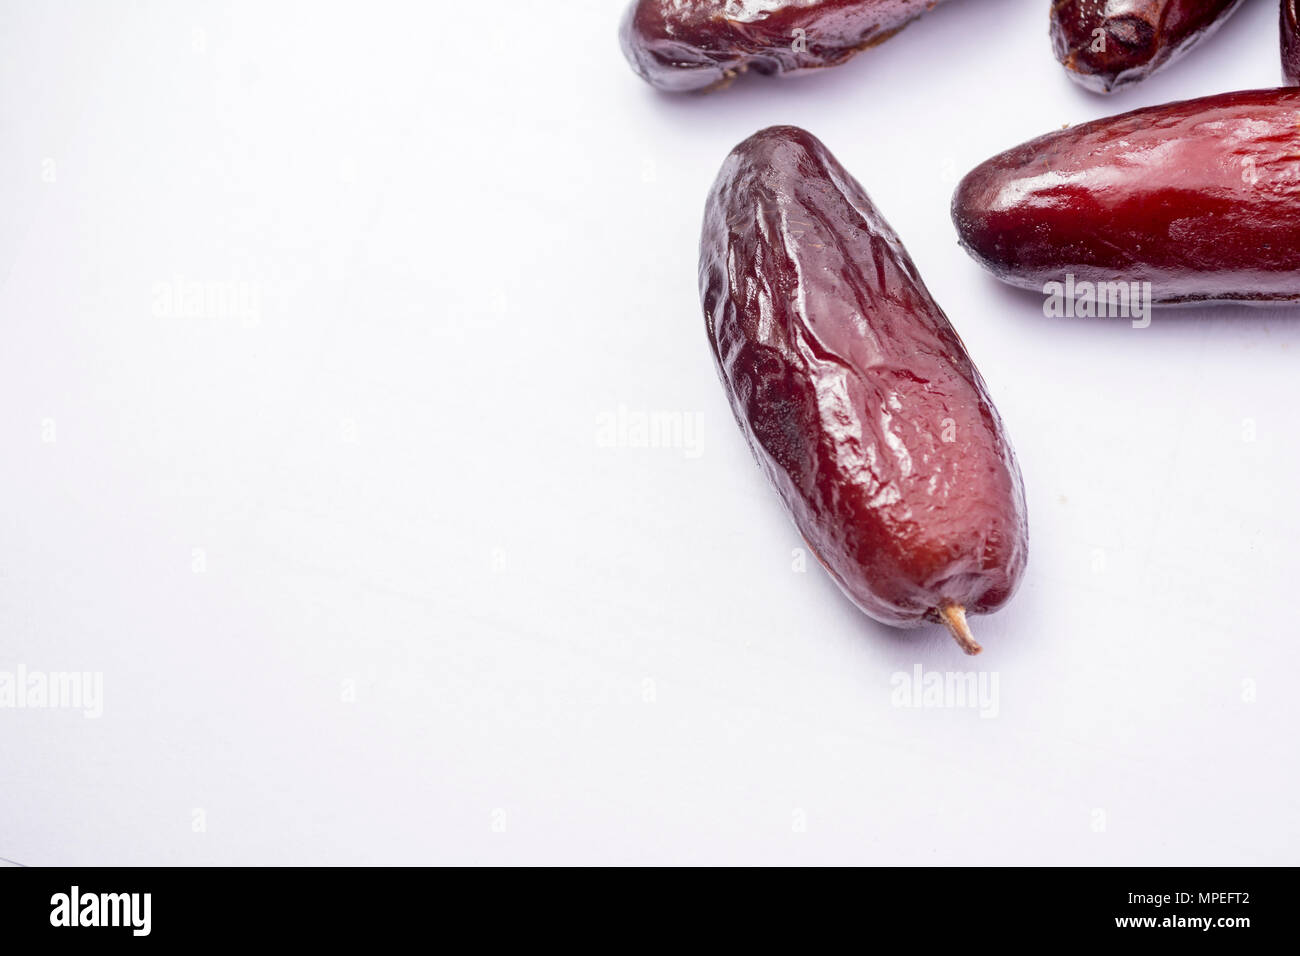 dates in white background - Stock Image